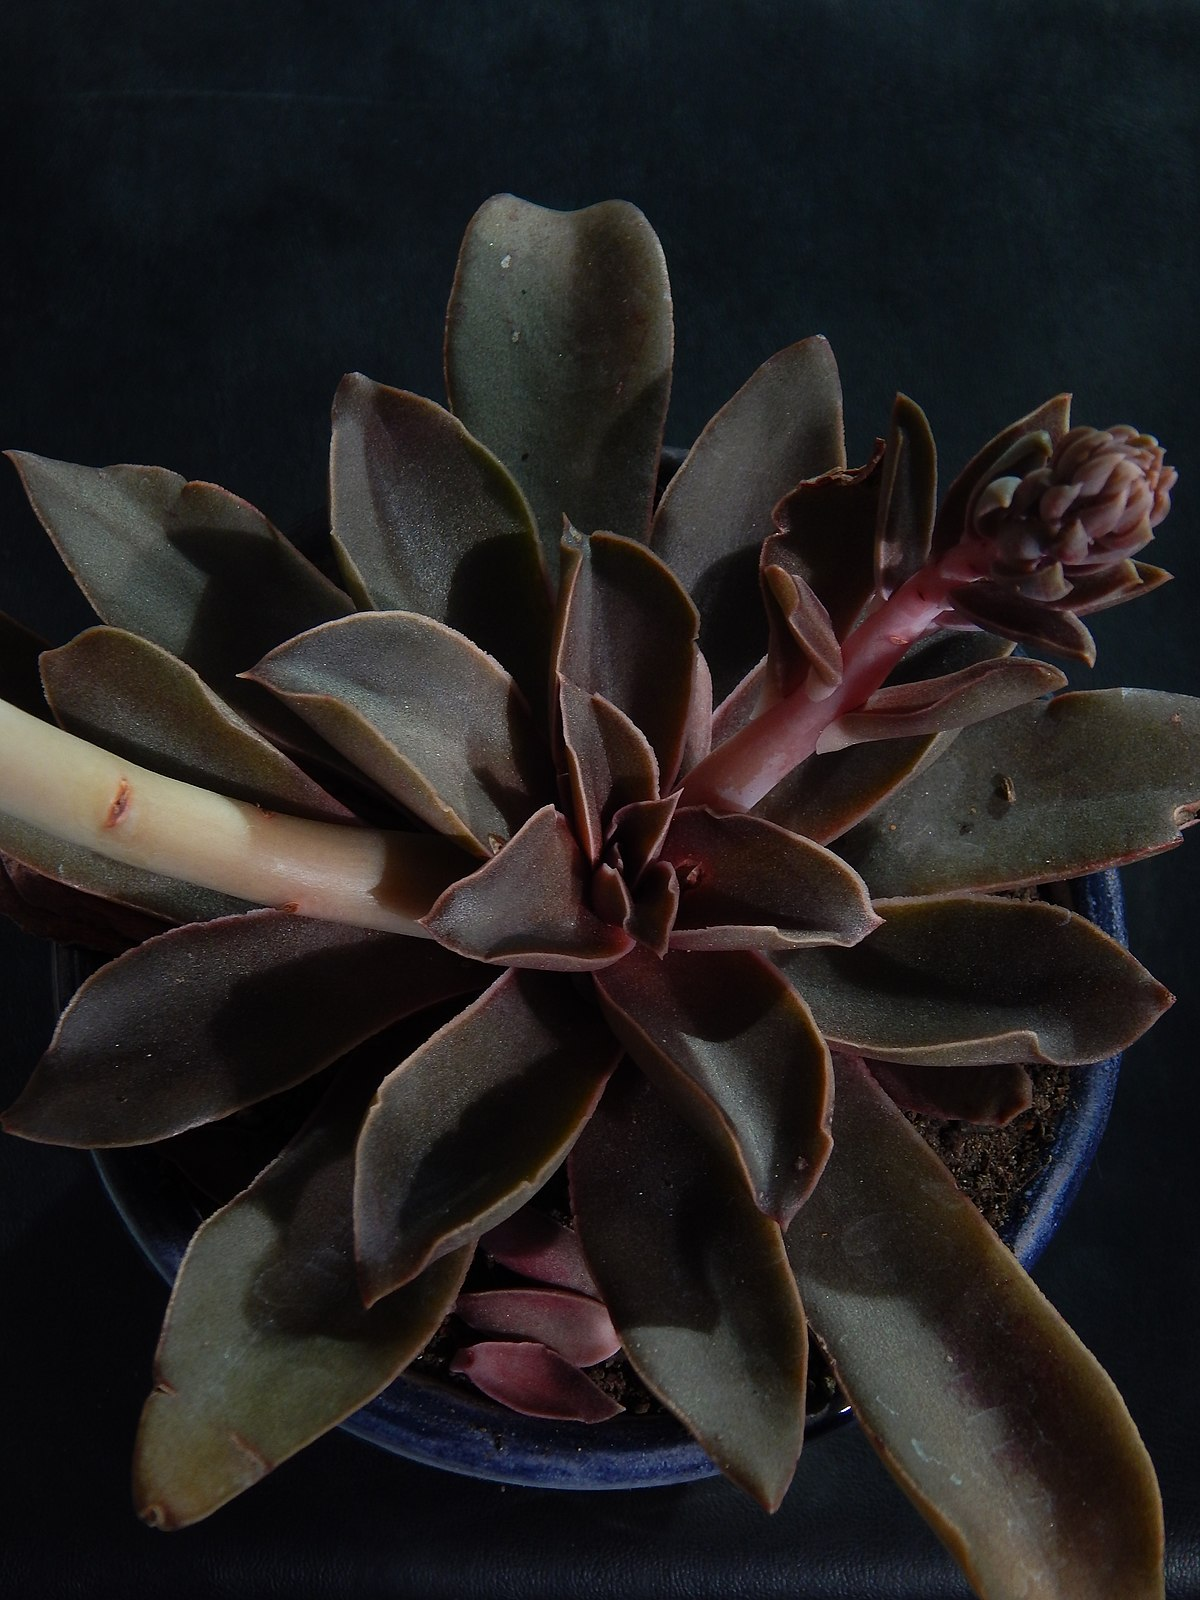 cheapest place to buy succulents